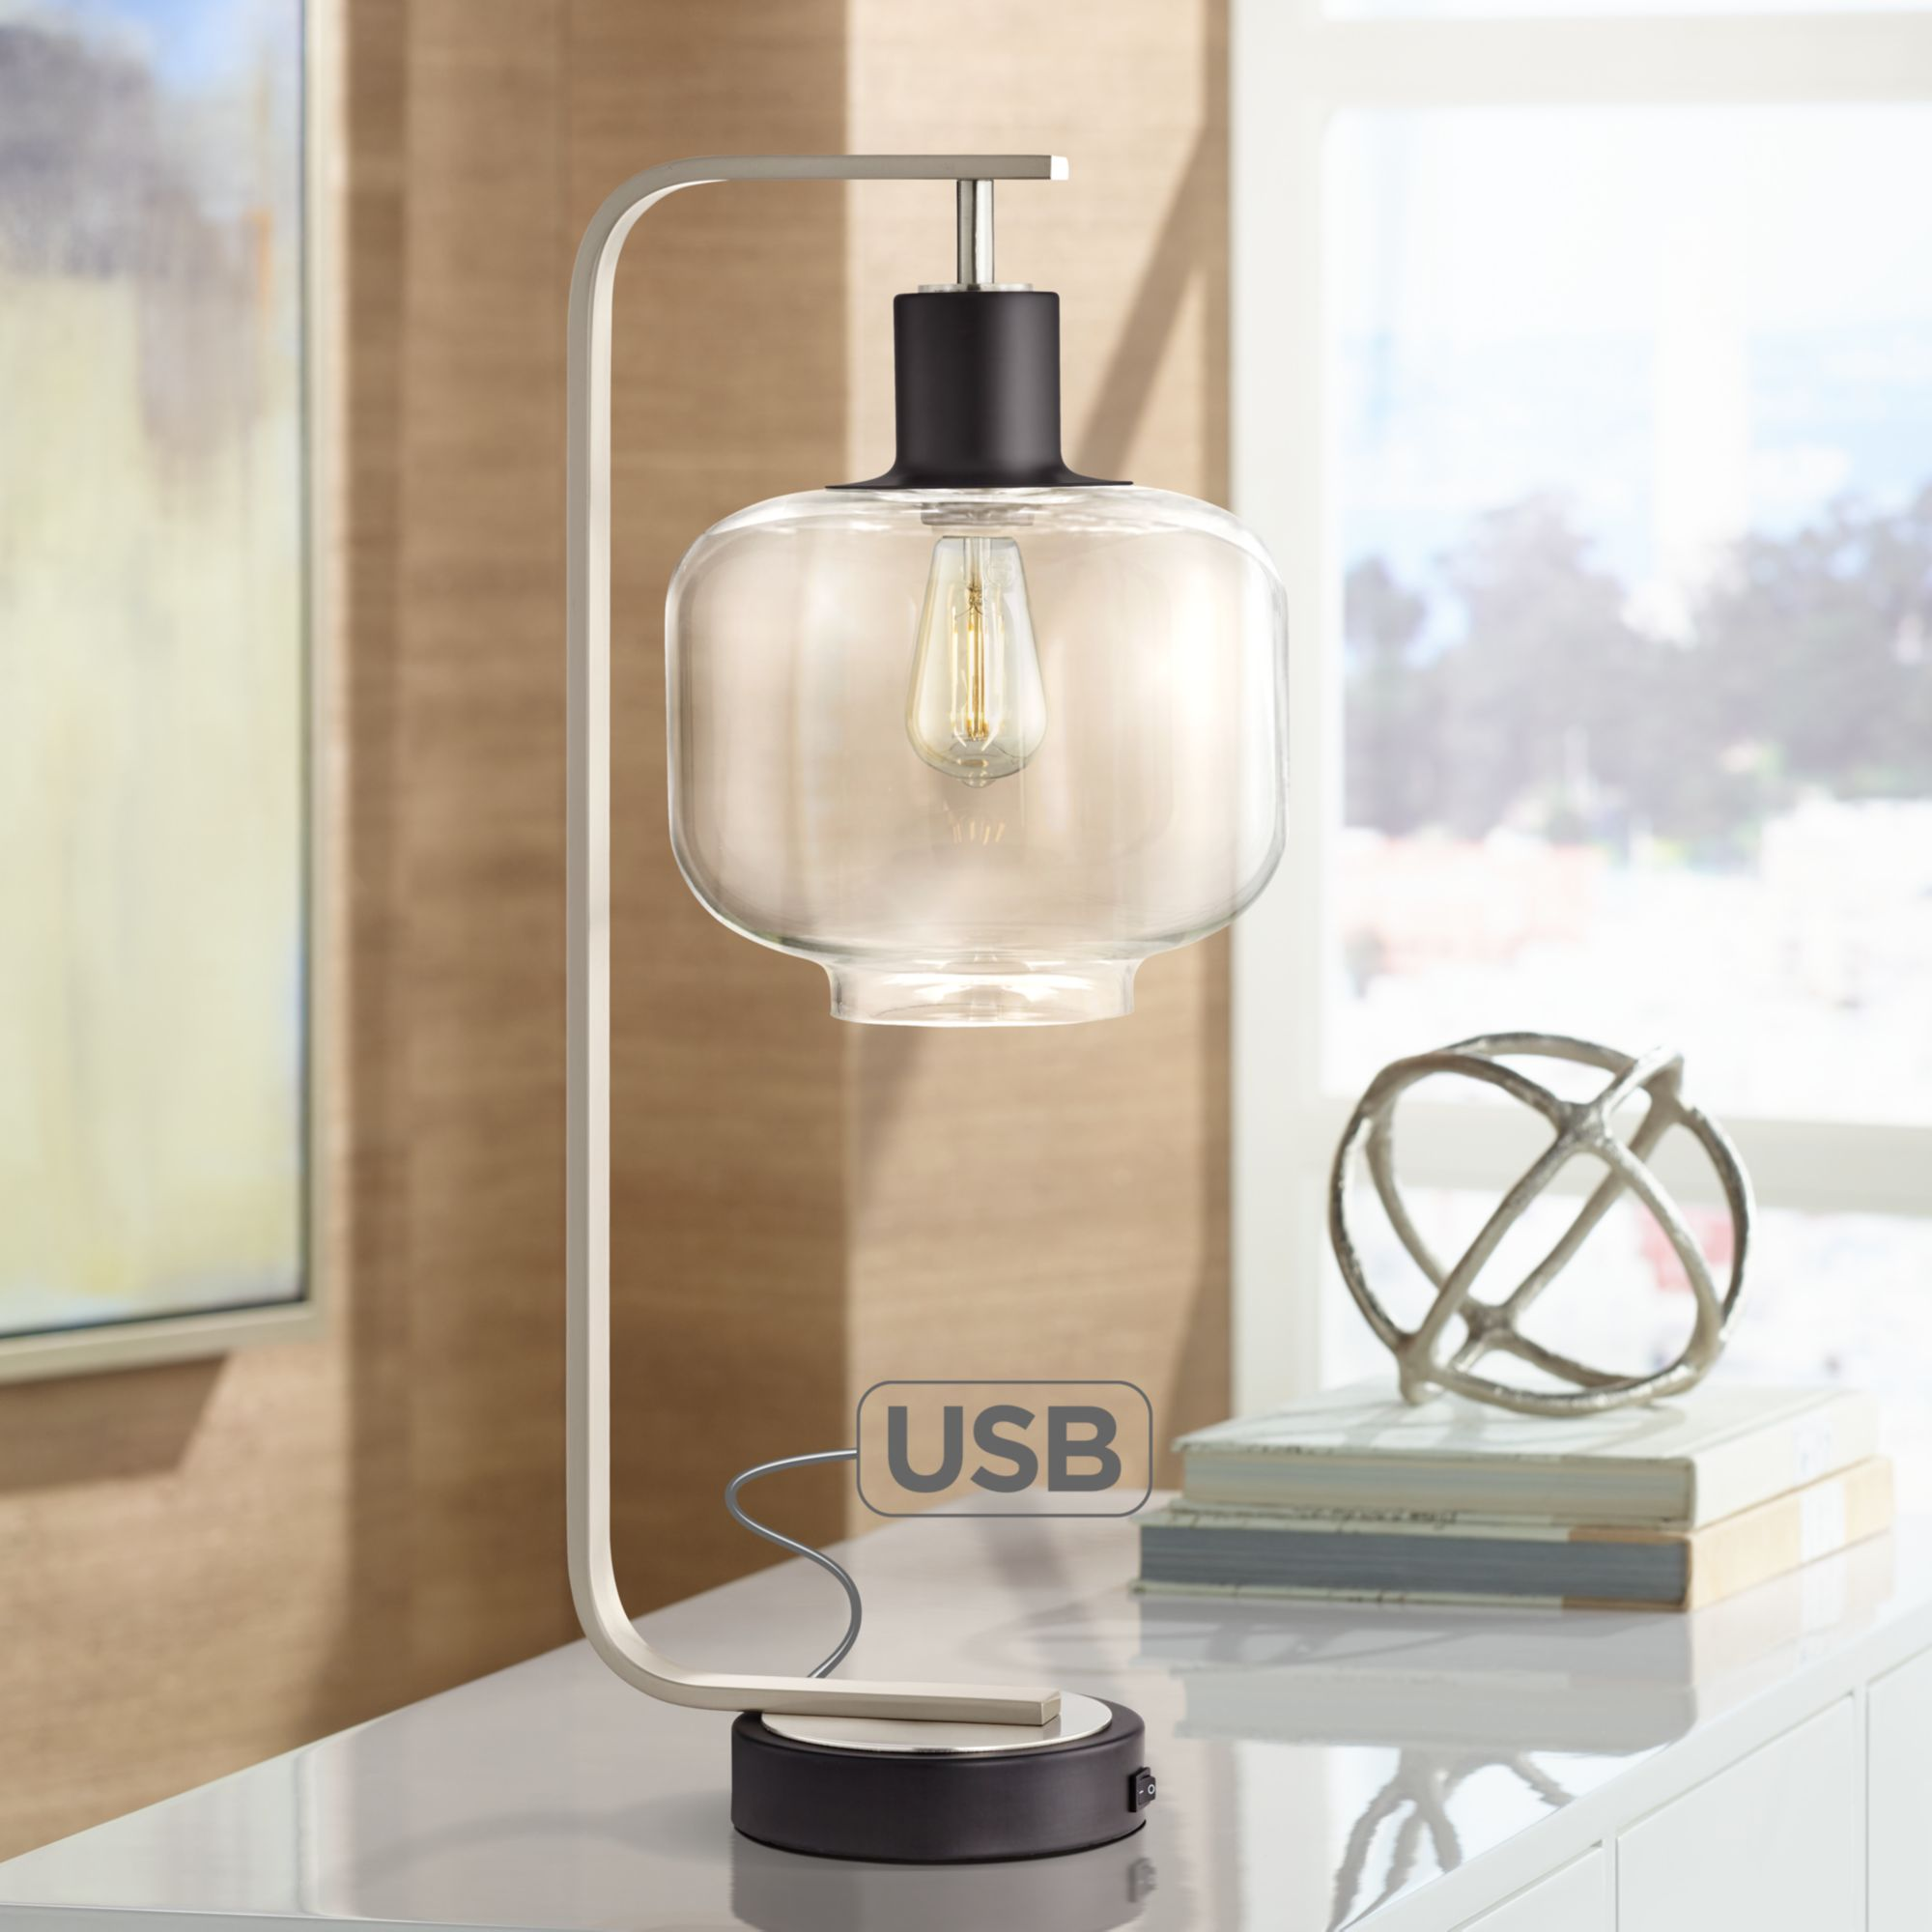 Franklin Iron Works Farmhouse Industrial Table Lamp With Usb Charging Port Brushed Nickel Glass Shade For Bedroom Bedside Office Walmart Com Walmart Com